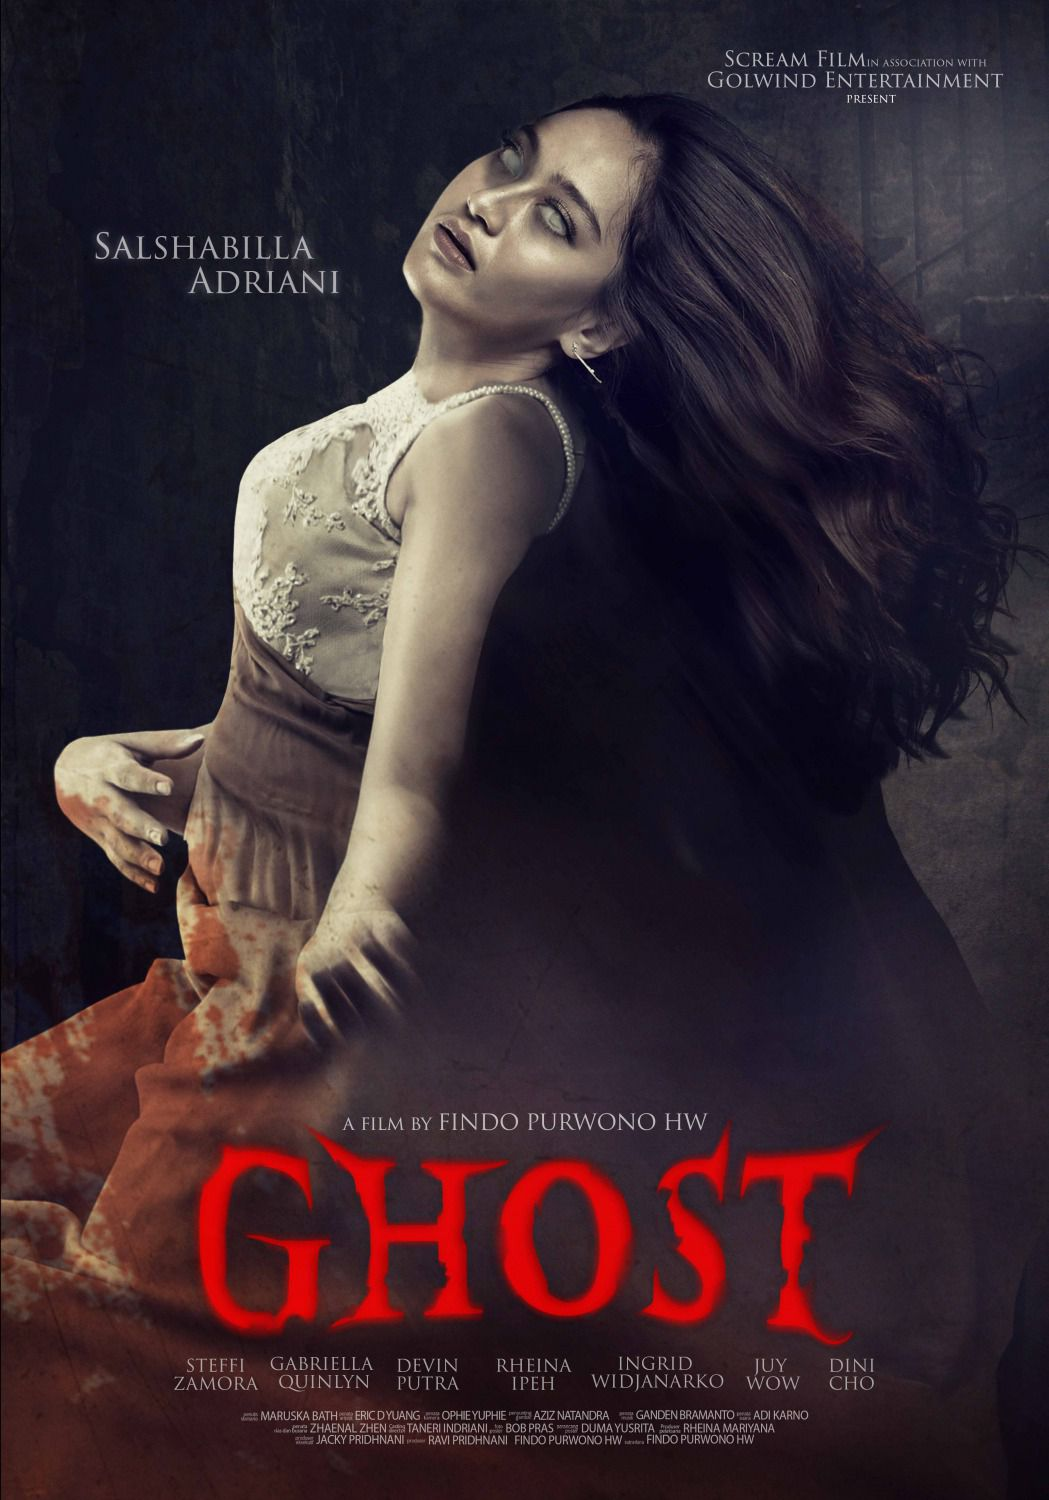 Ghost by Findo Purwono HW - Salshabille Adriani - film poster 2018